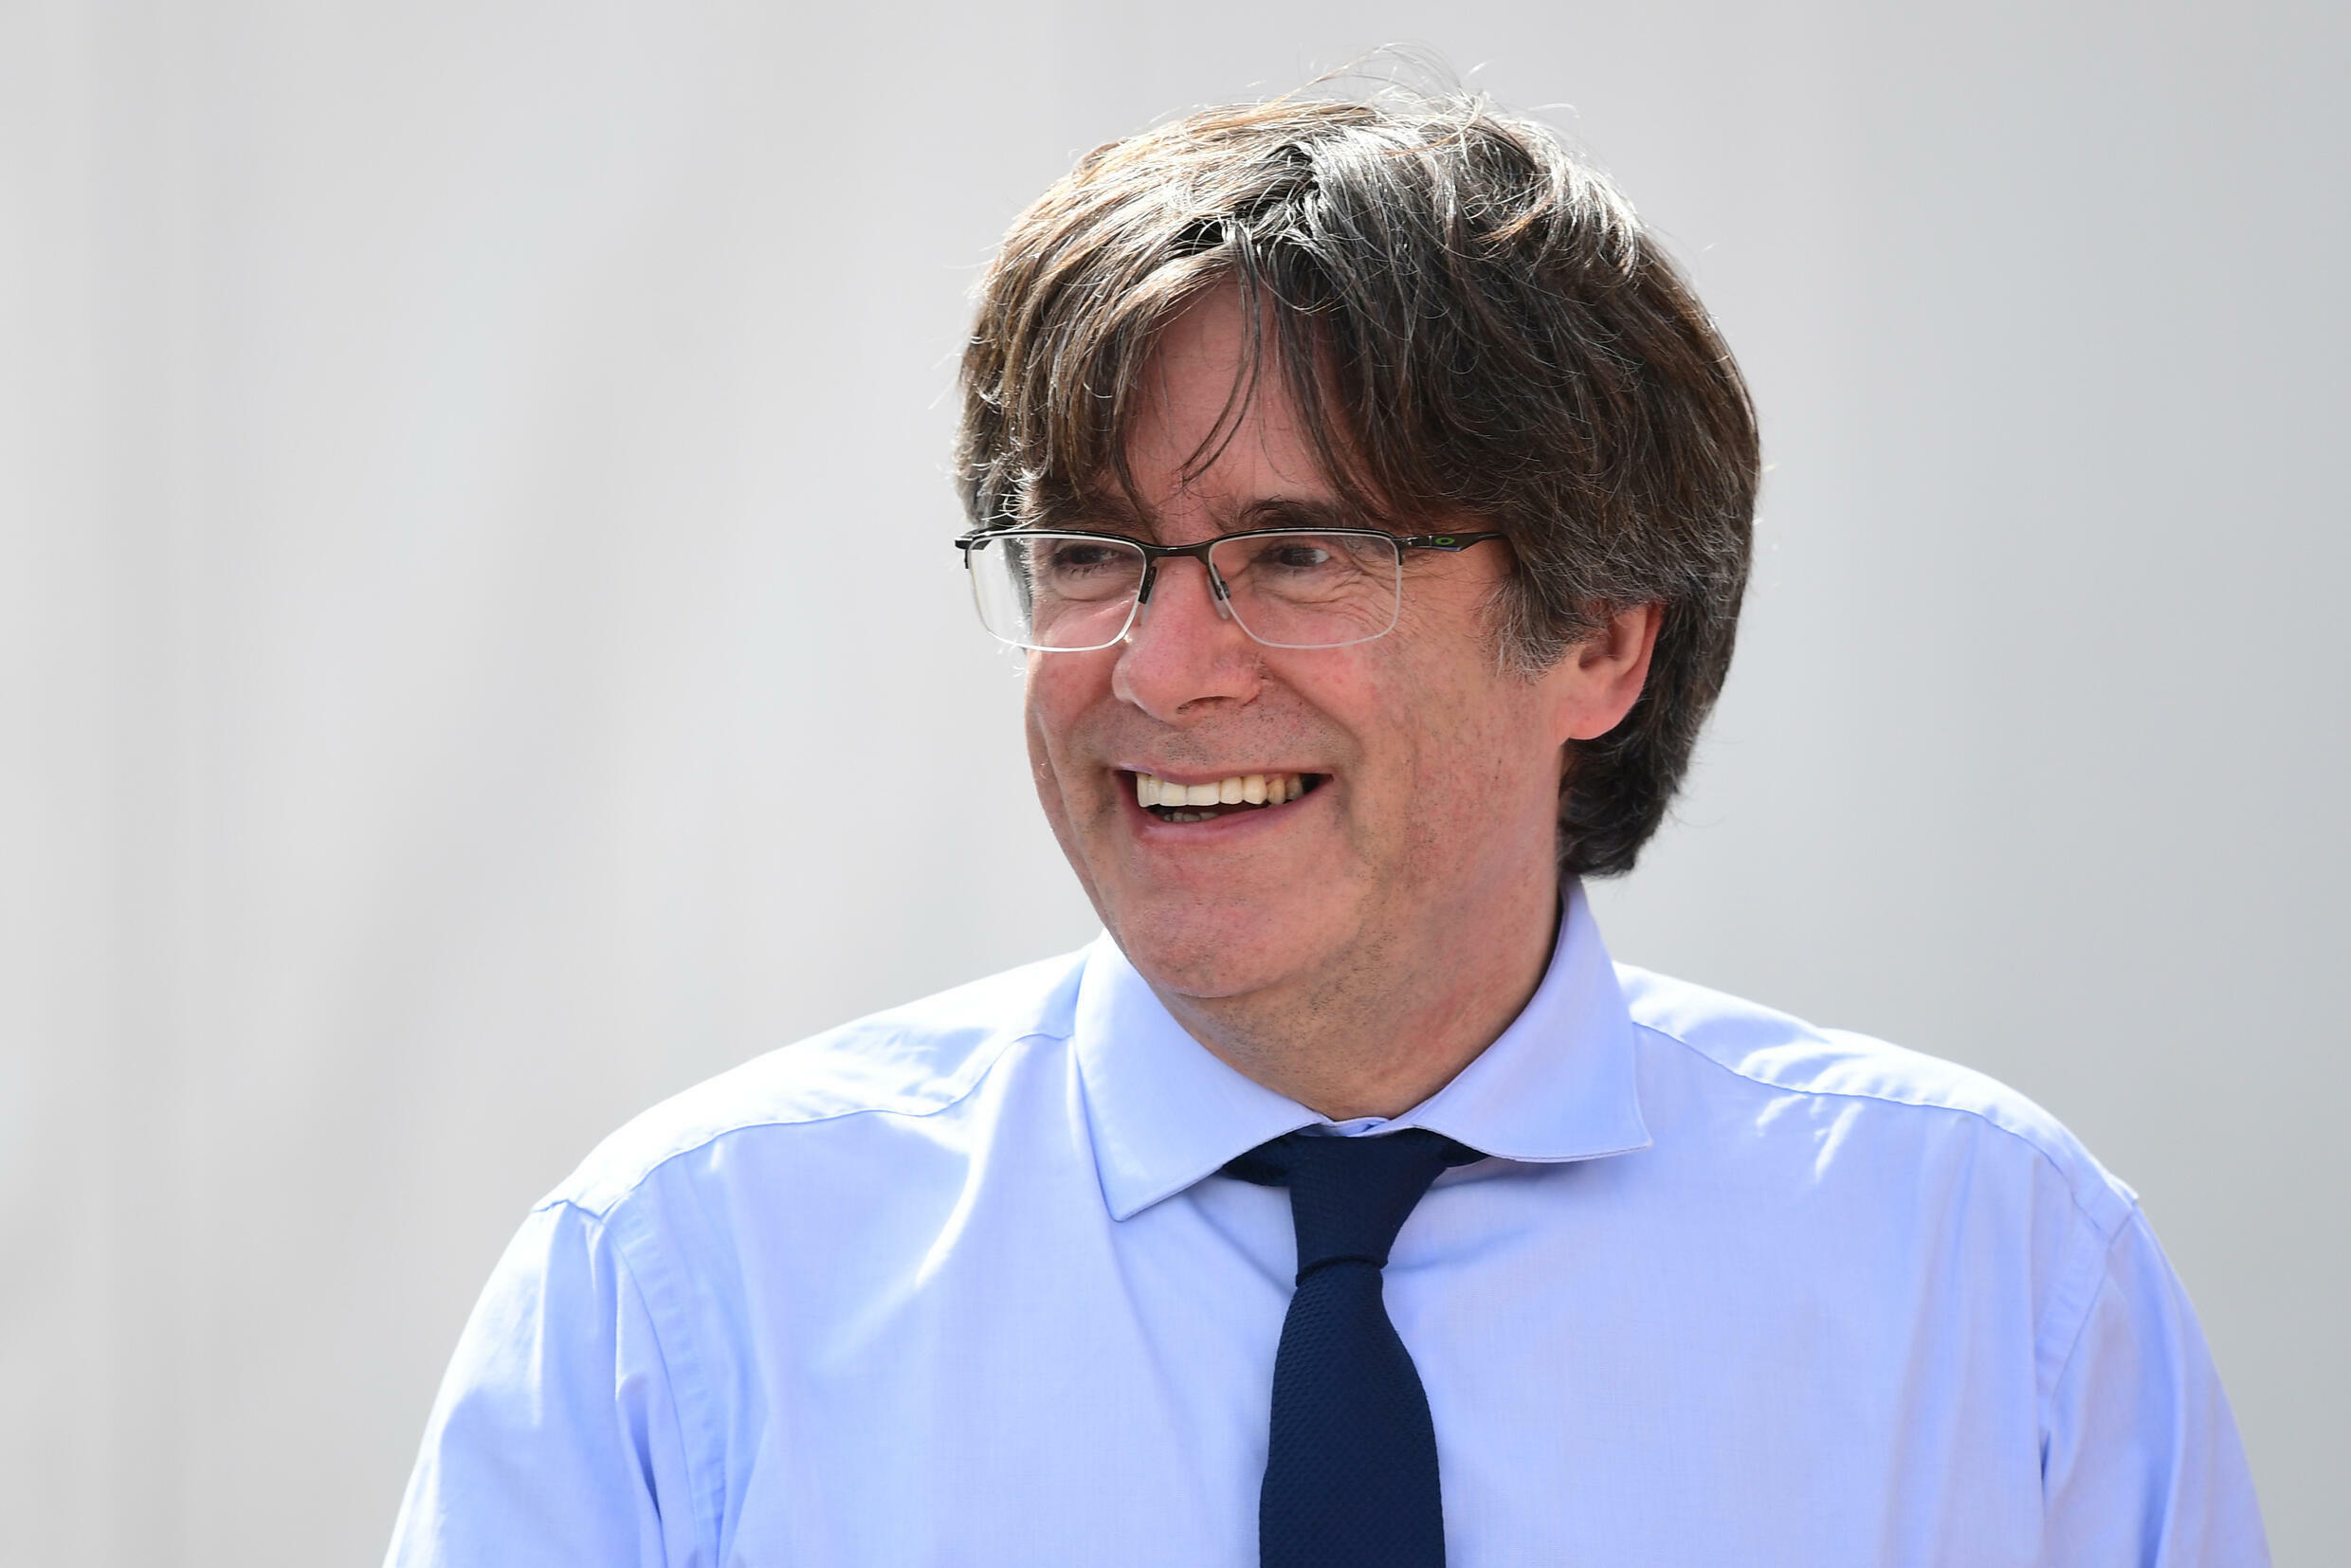 Carles Puigdemont is wanted by Madrid on charges of sedition for leading a failed Catalan bid to declare independence from Spain in October 2017